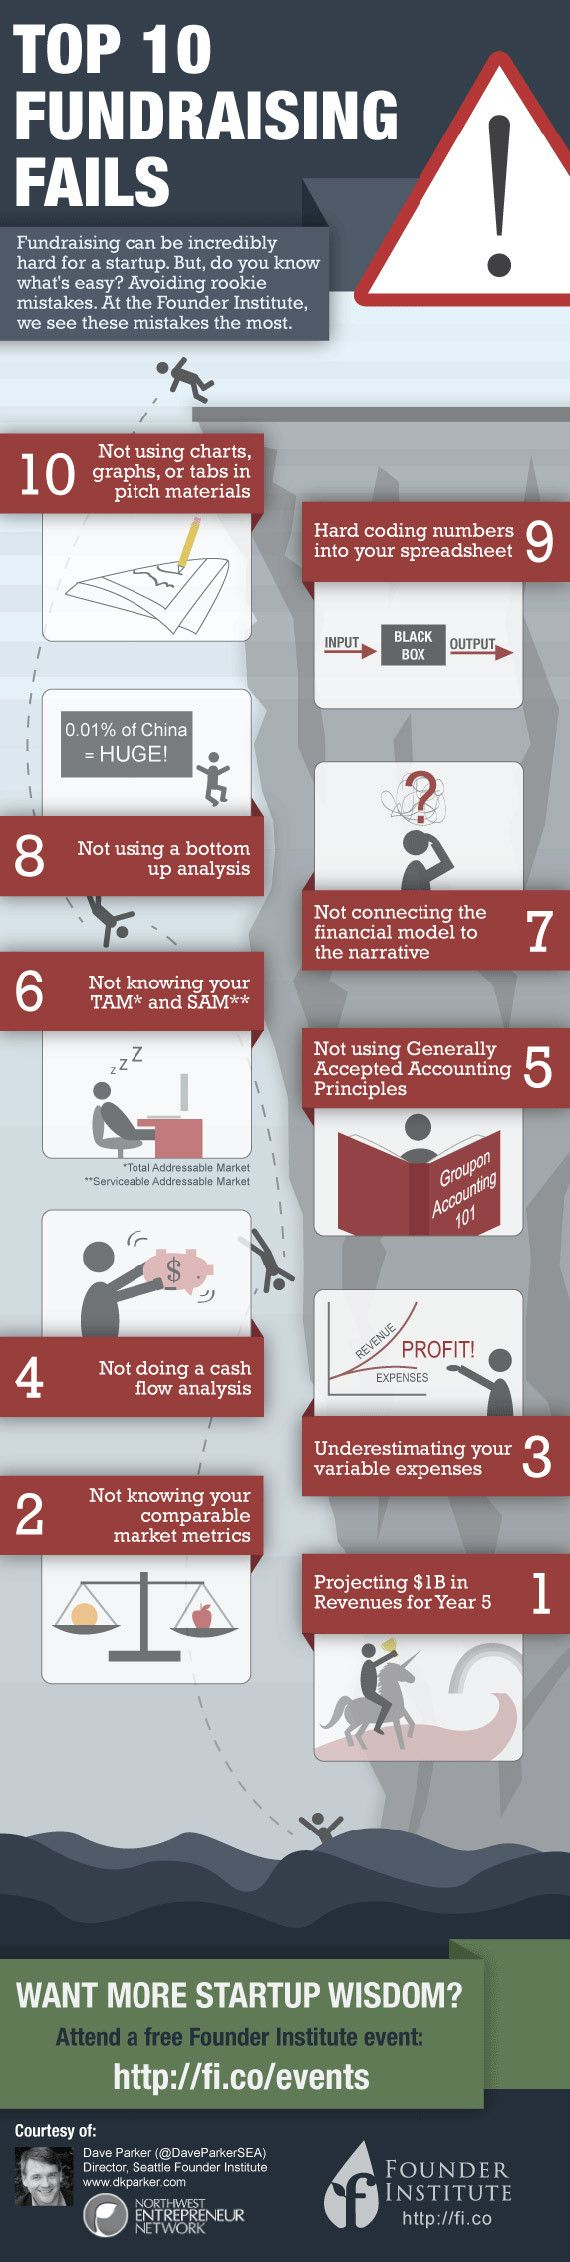 Top 10 Fundraising Fails [INFOGRAPHIC] #fundraising